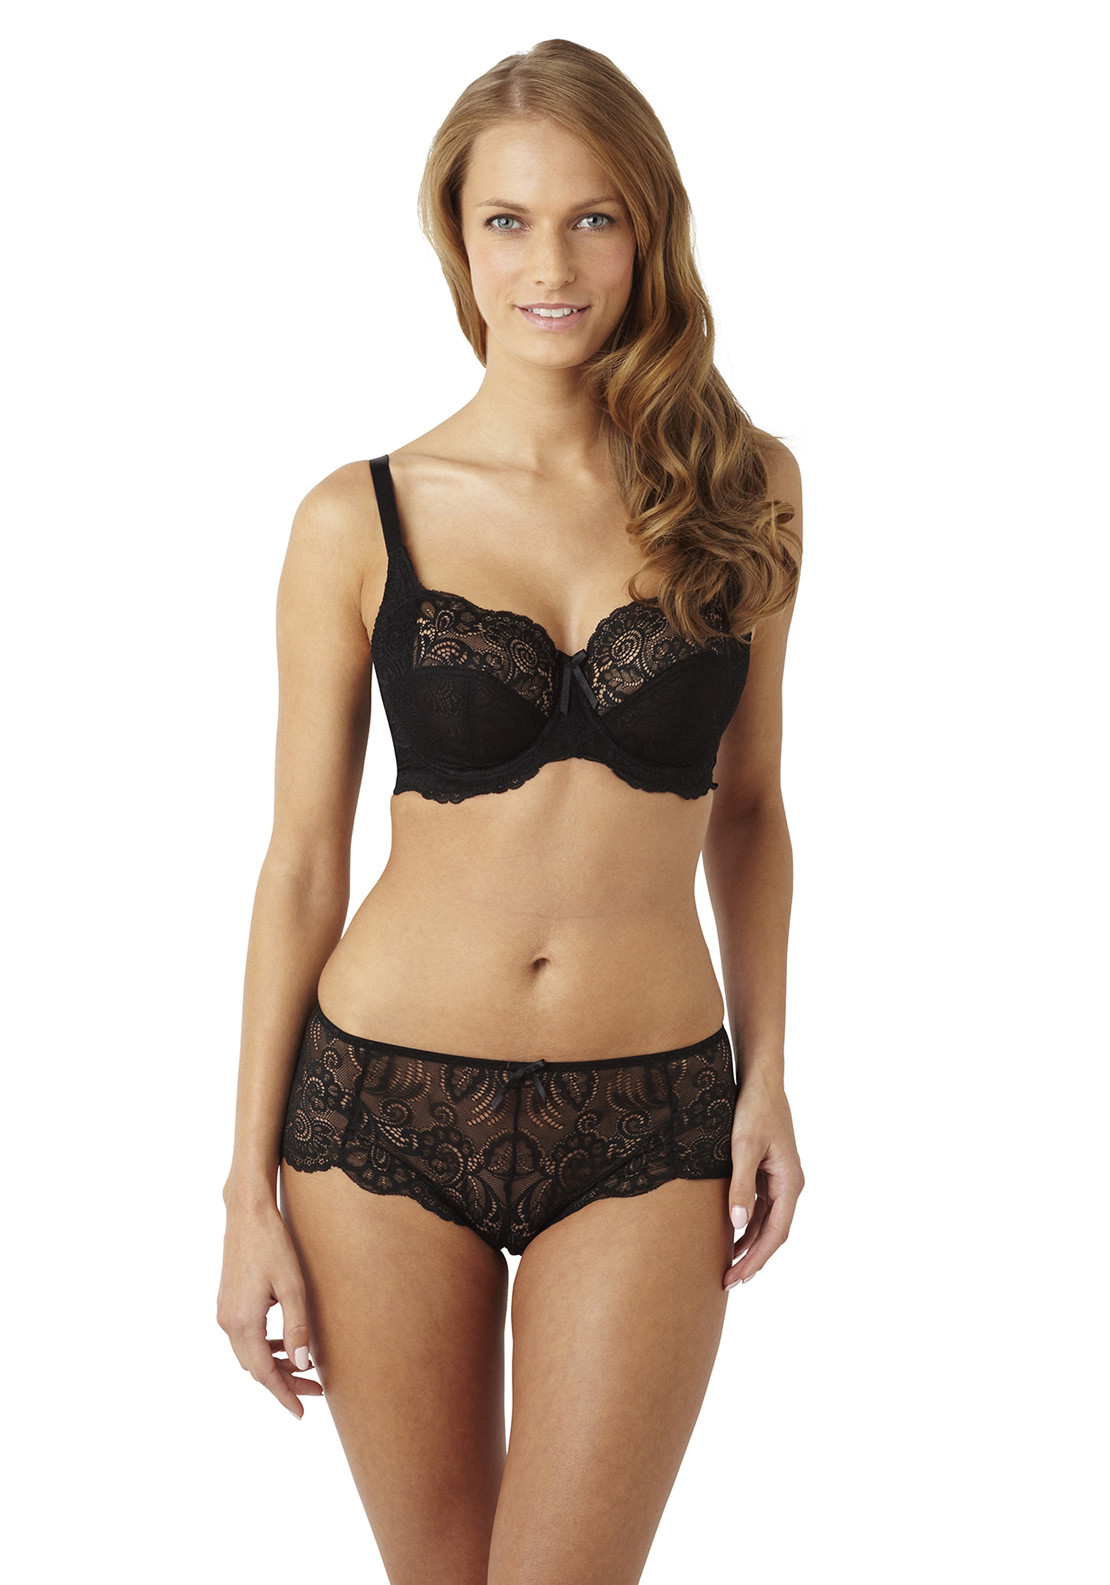 Panache Andorra Lace Shorty Briefs, Black